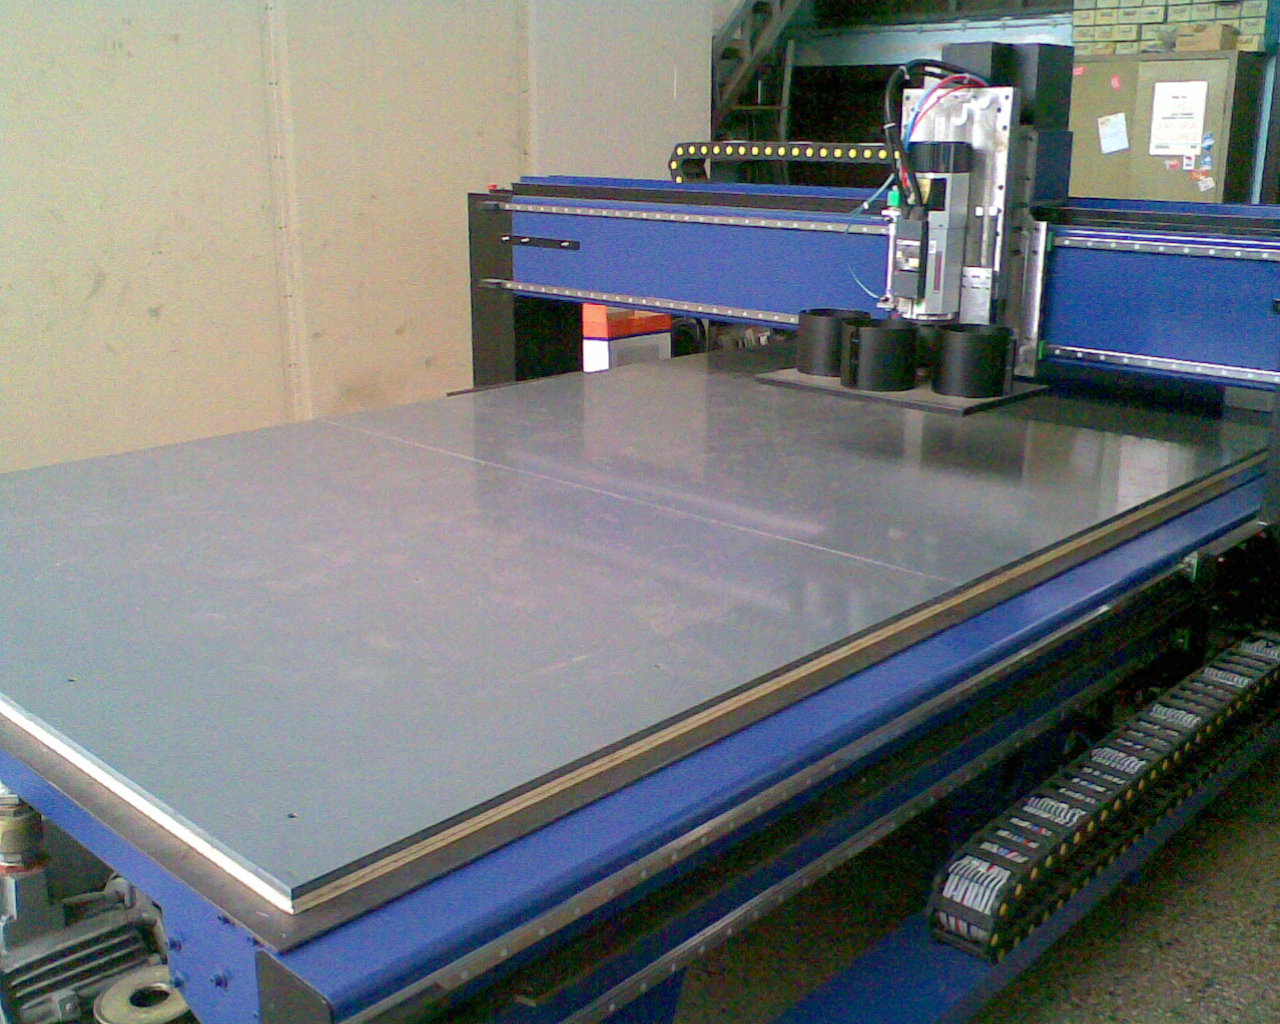 A CNC router is in an application.